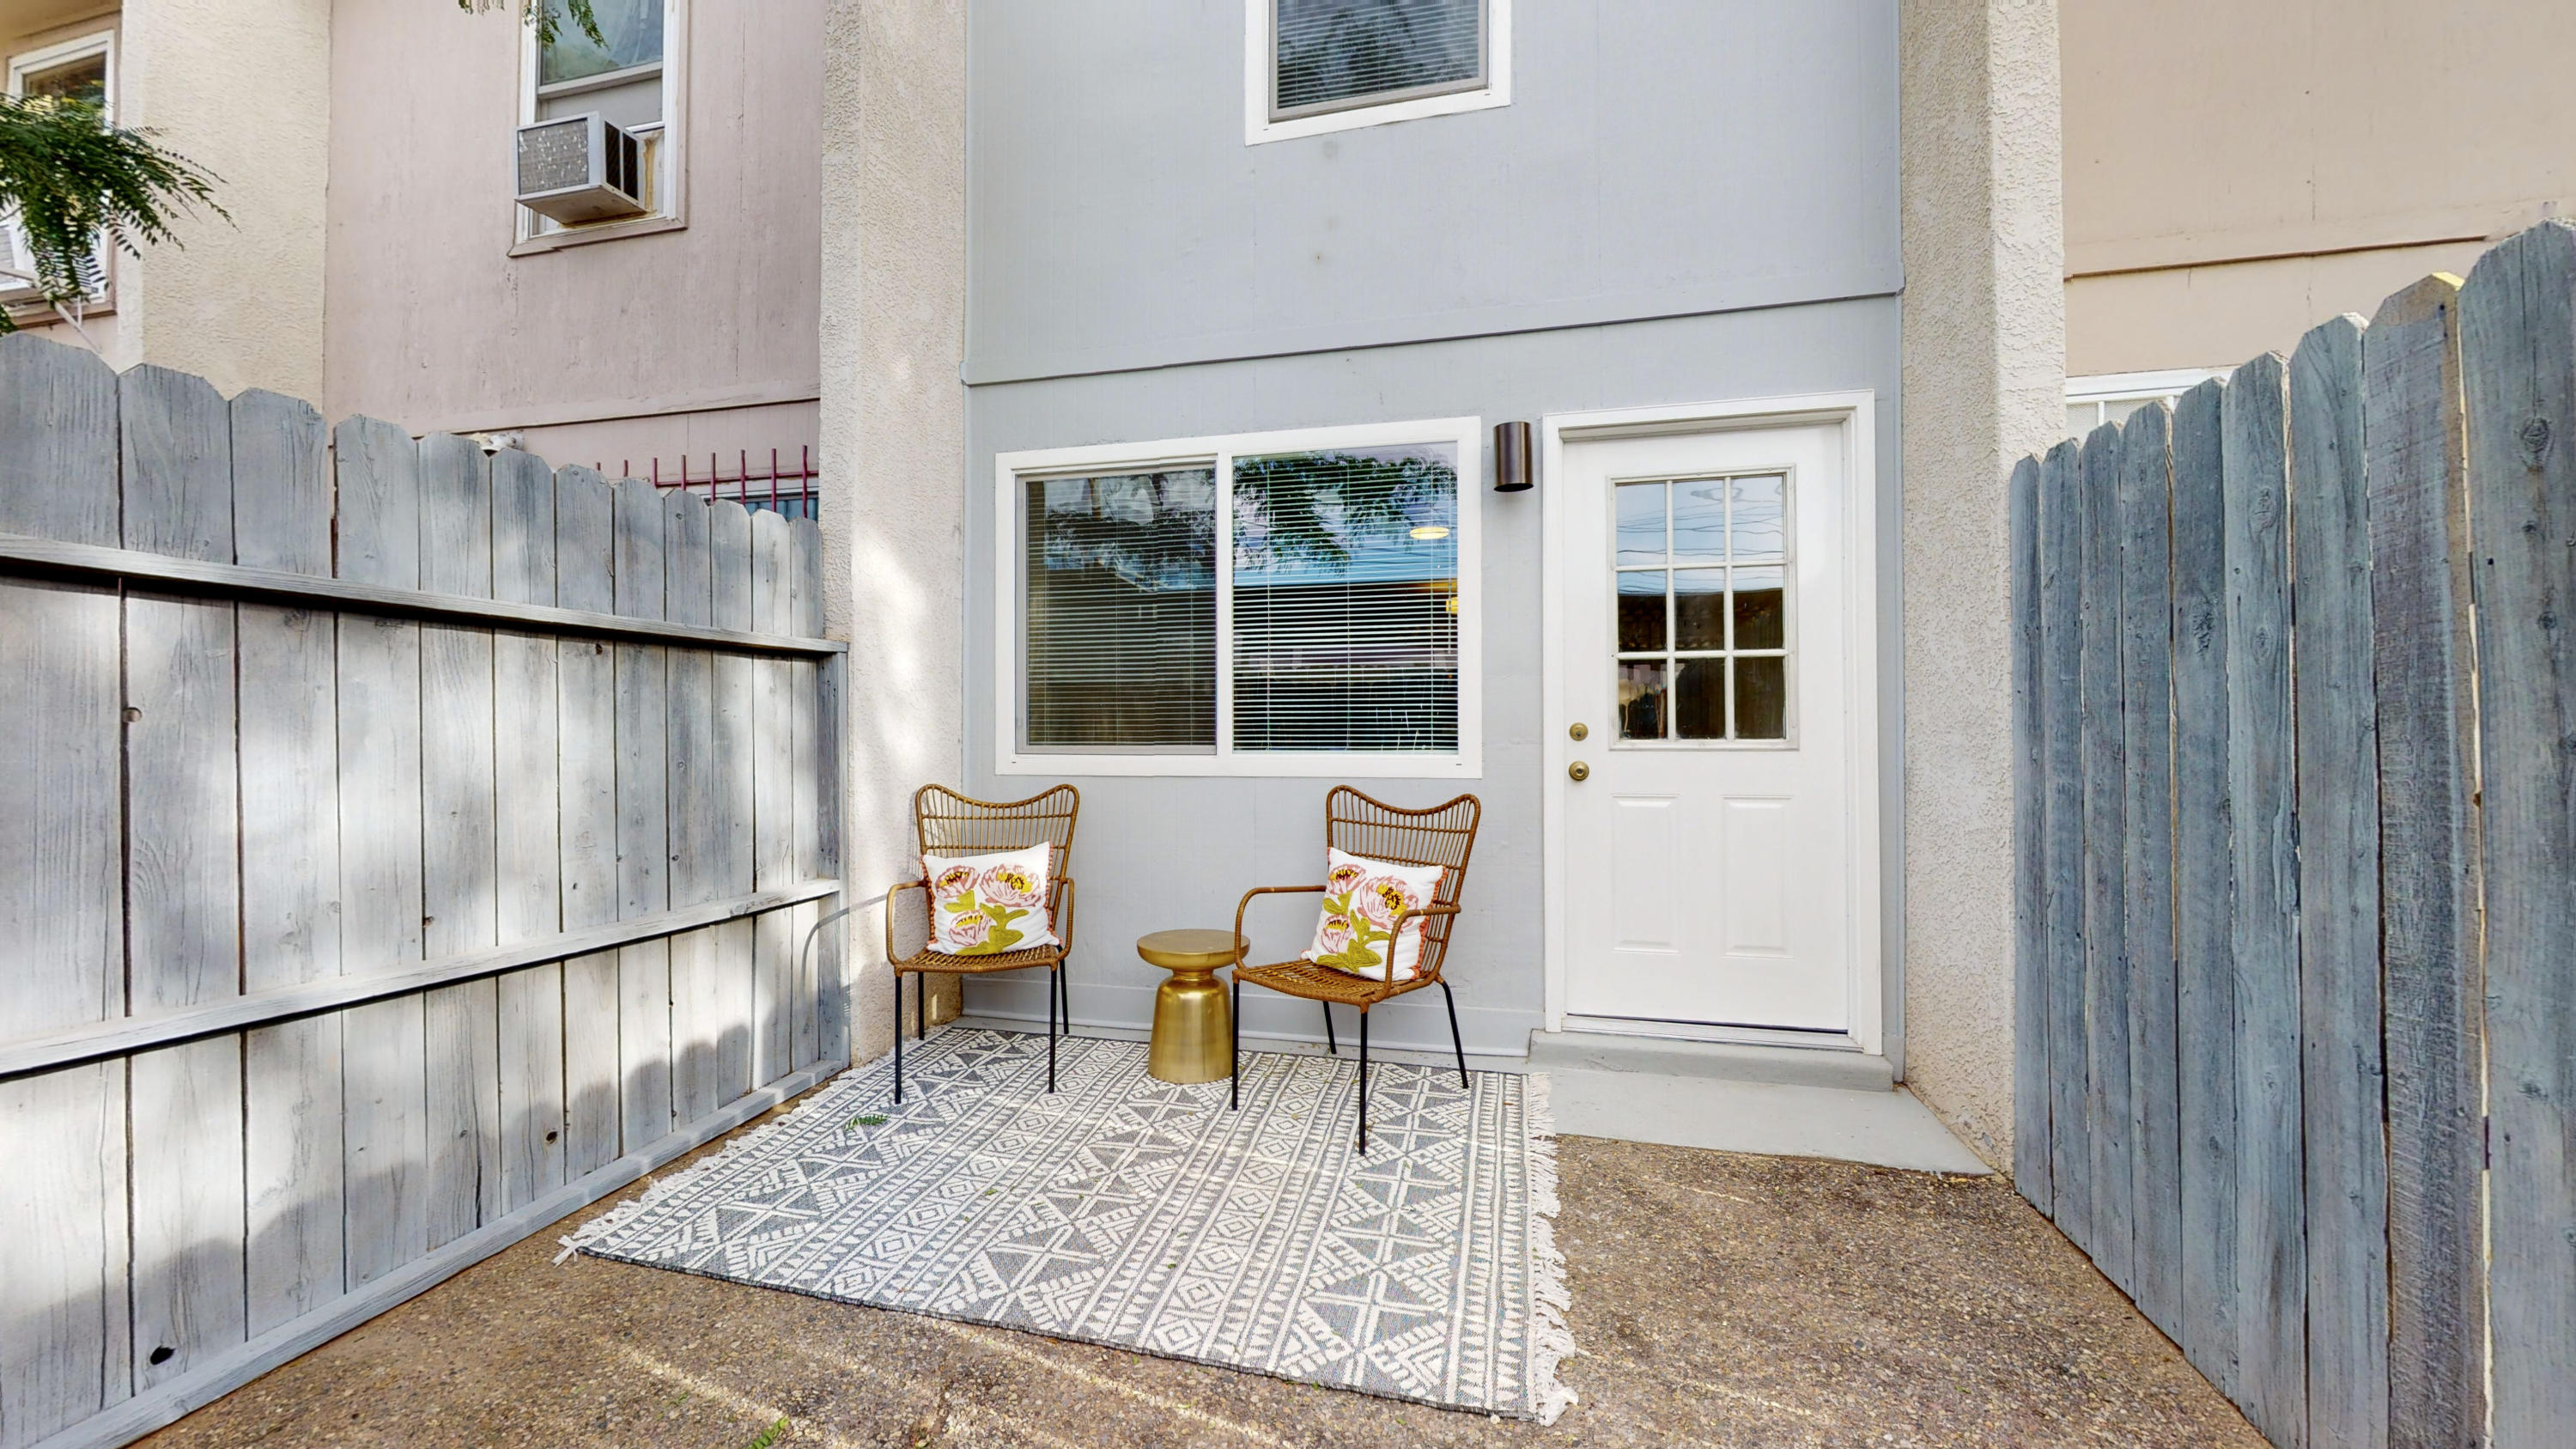 Wow Nob Hill living for $165K. This is one of the best deals in Nob Hill. Completely remodeled. New SS appliances, flooring bathroom upgrade, lights, doors, and paint. Bring all offers.Owner Broker